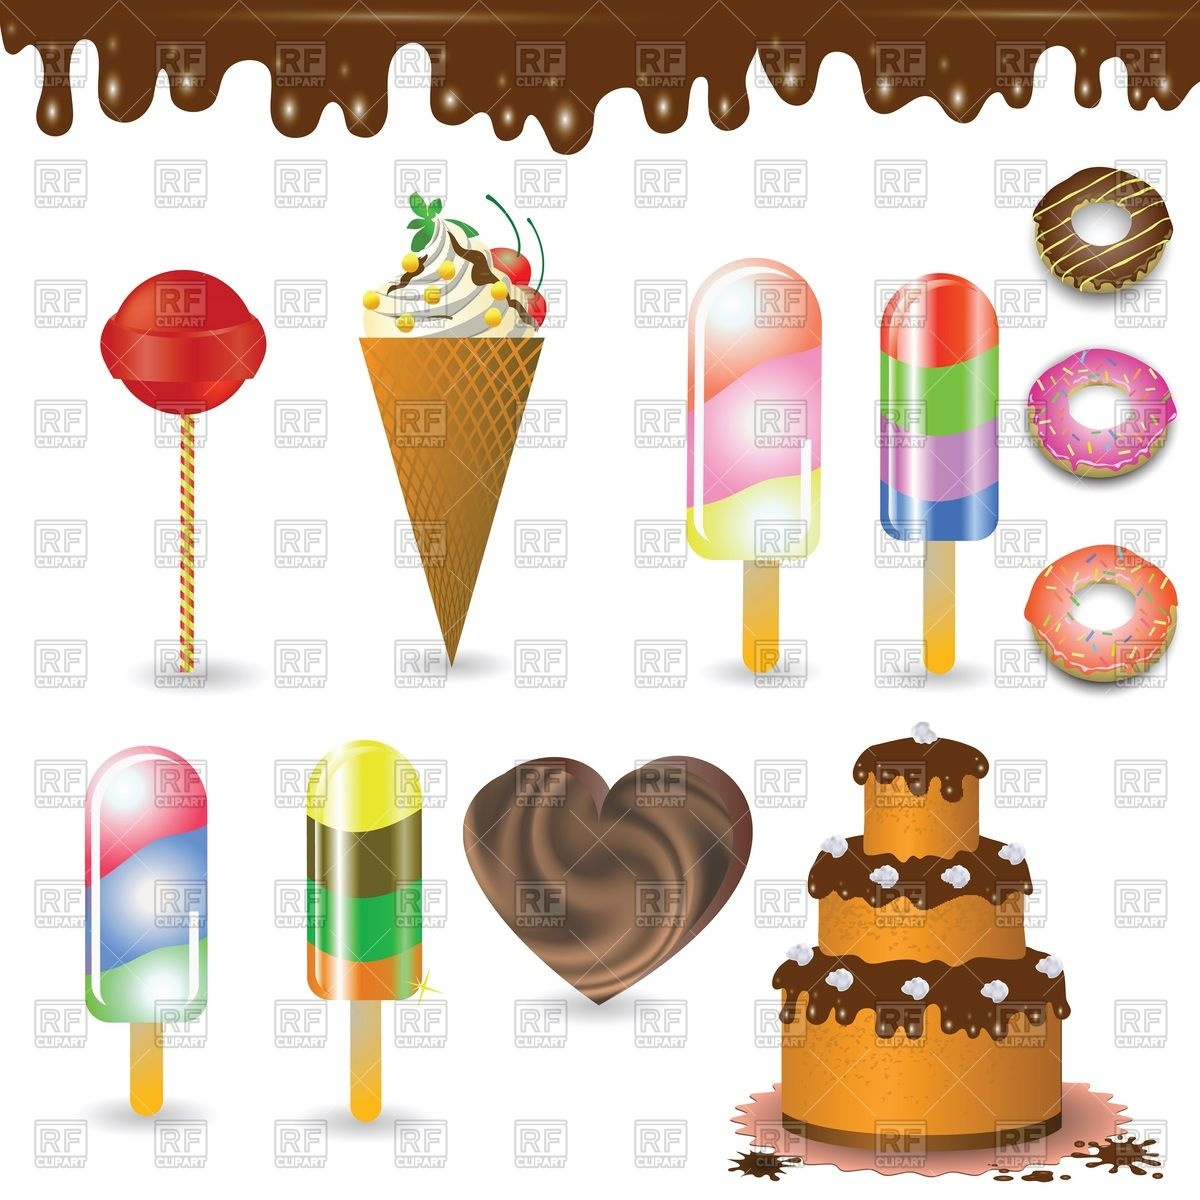 Cafe and confectionery icon set.